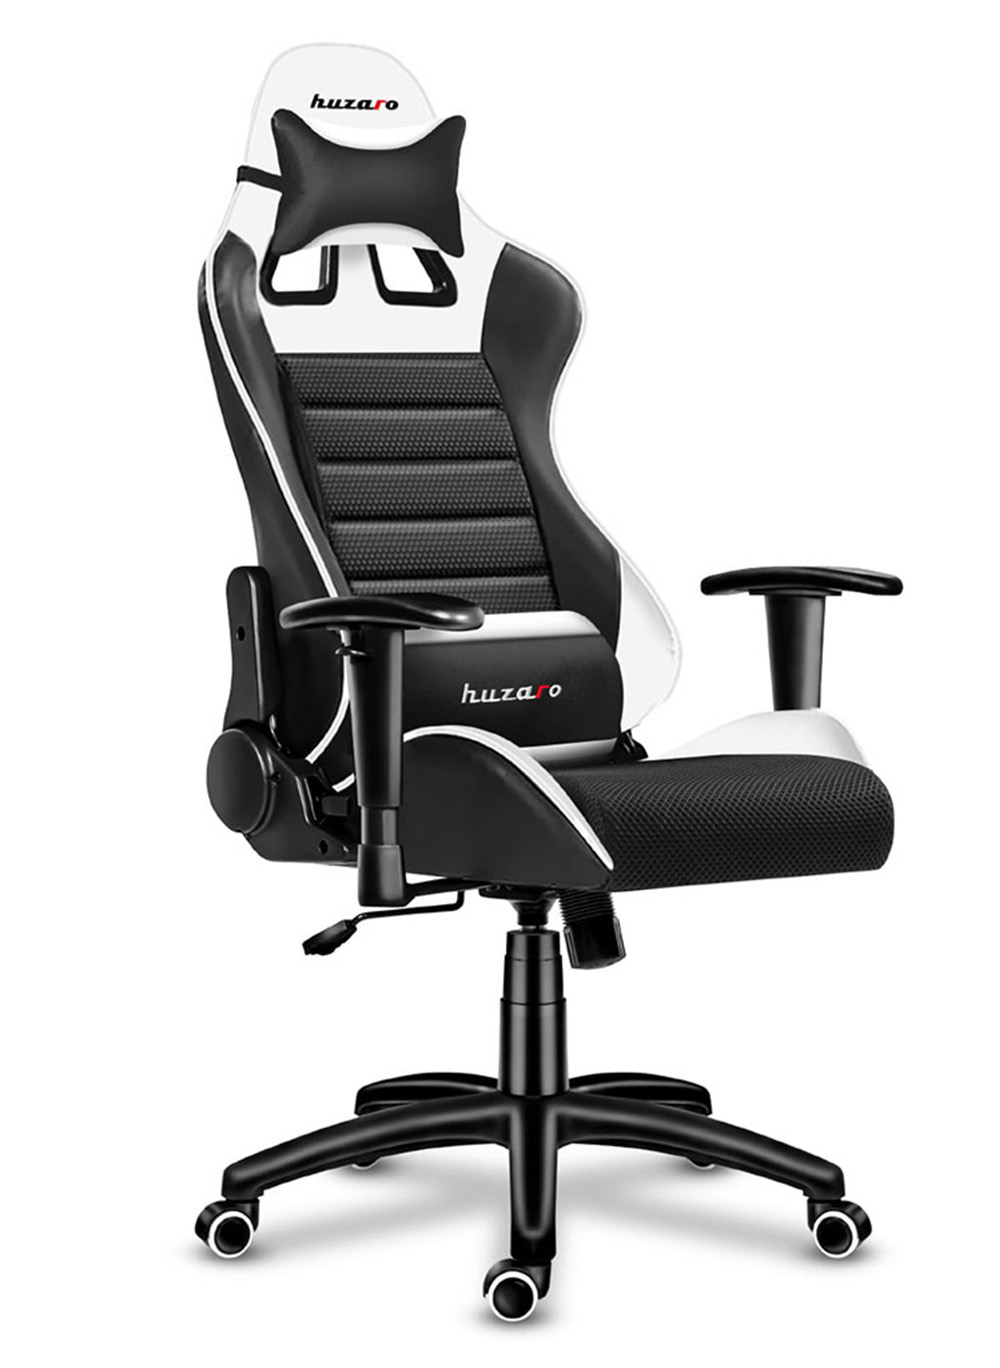 Gaming-Chairs-HUZARO-FORCE-6.0-1-buy-now-sale-led-uk